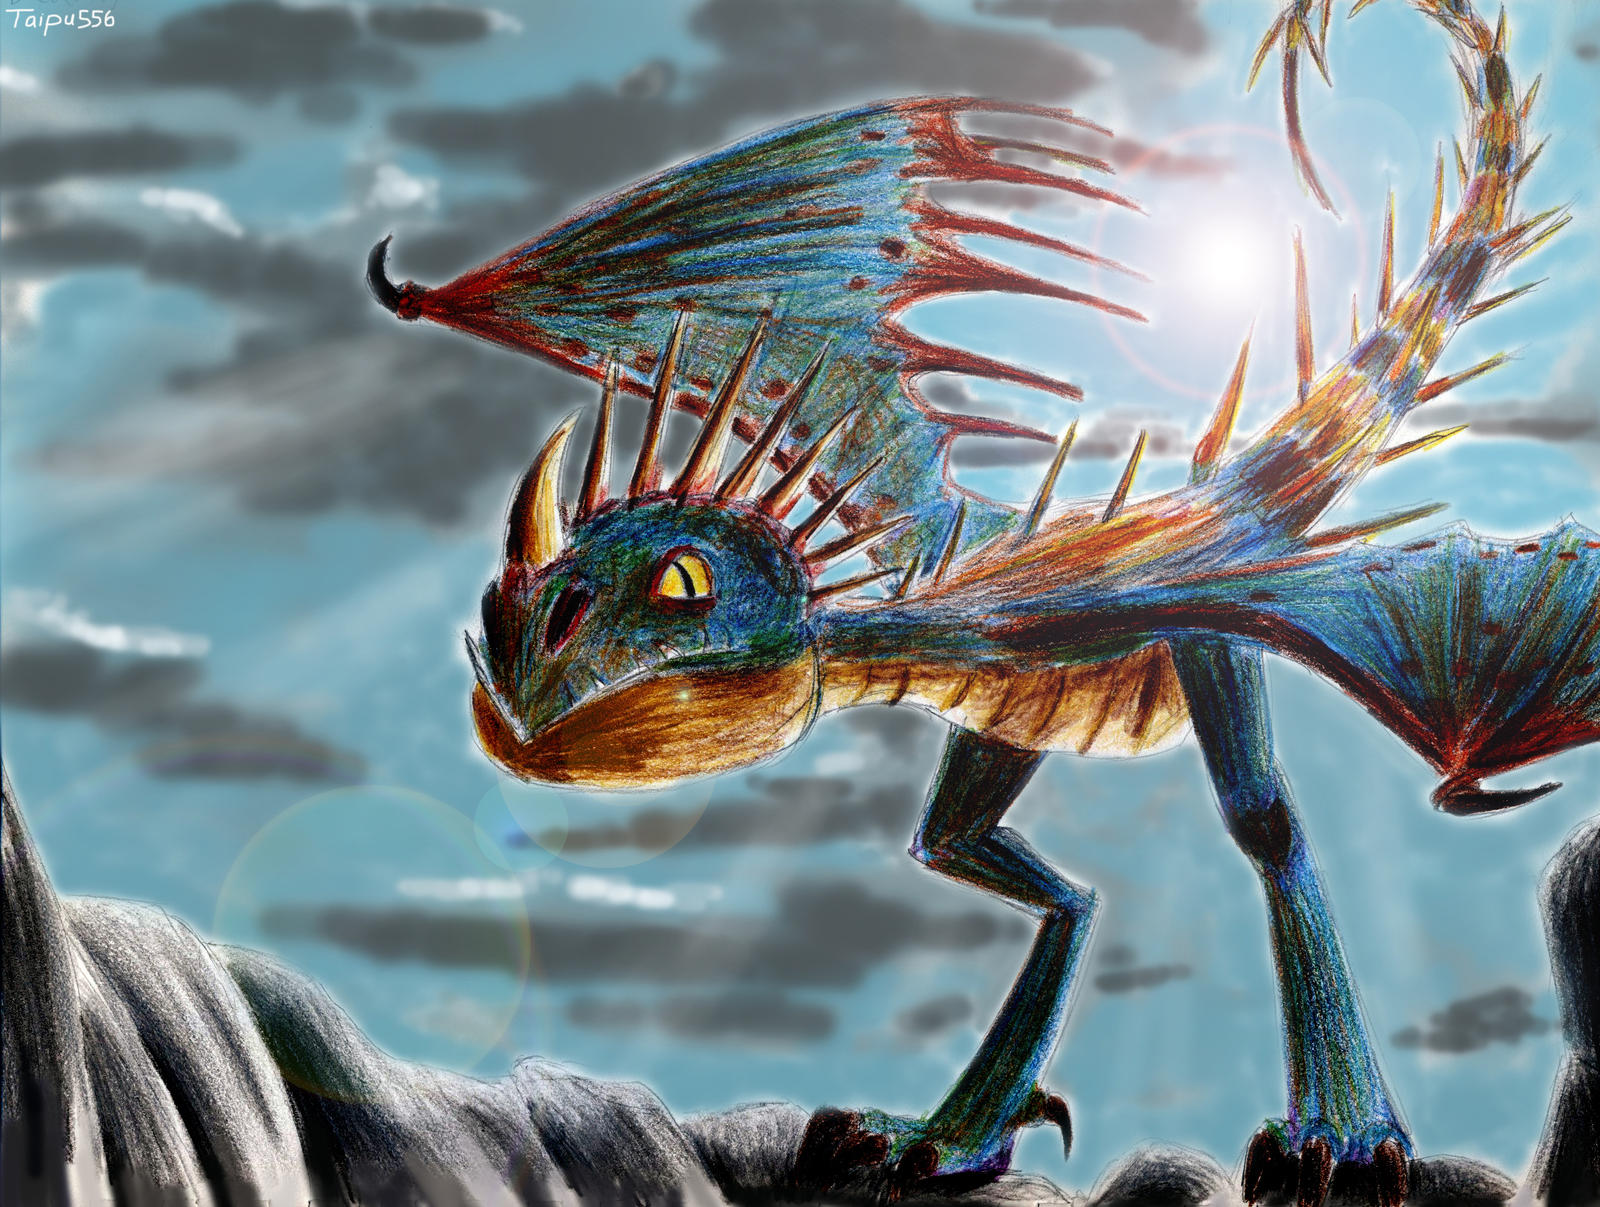 how to train your dragon  deadly nadder by water horse d5br2yb moreover Personnages celebres DreamWorks 543420 besides Fireworm hero as well dagur have a skrill    by hicksberlin d7vlnfh furthermore  in addition baby nightmares hero additionally  likewise B00337KBZG 04 lg in addition hqdefault as well  additionally . on an dragons dreamworks coloring pages